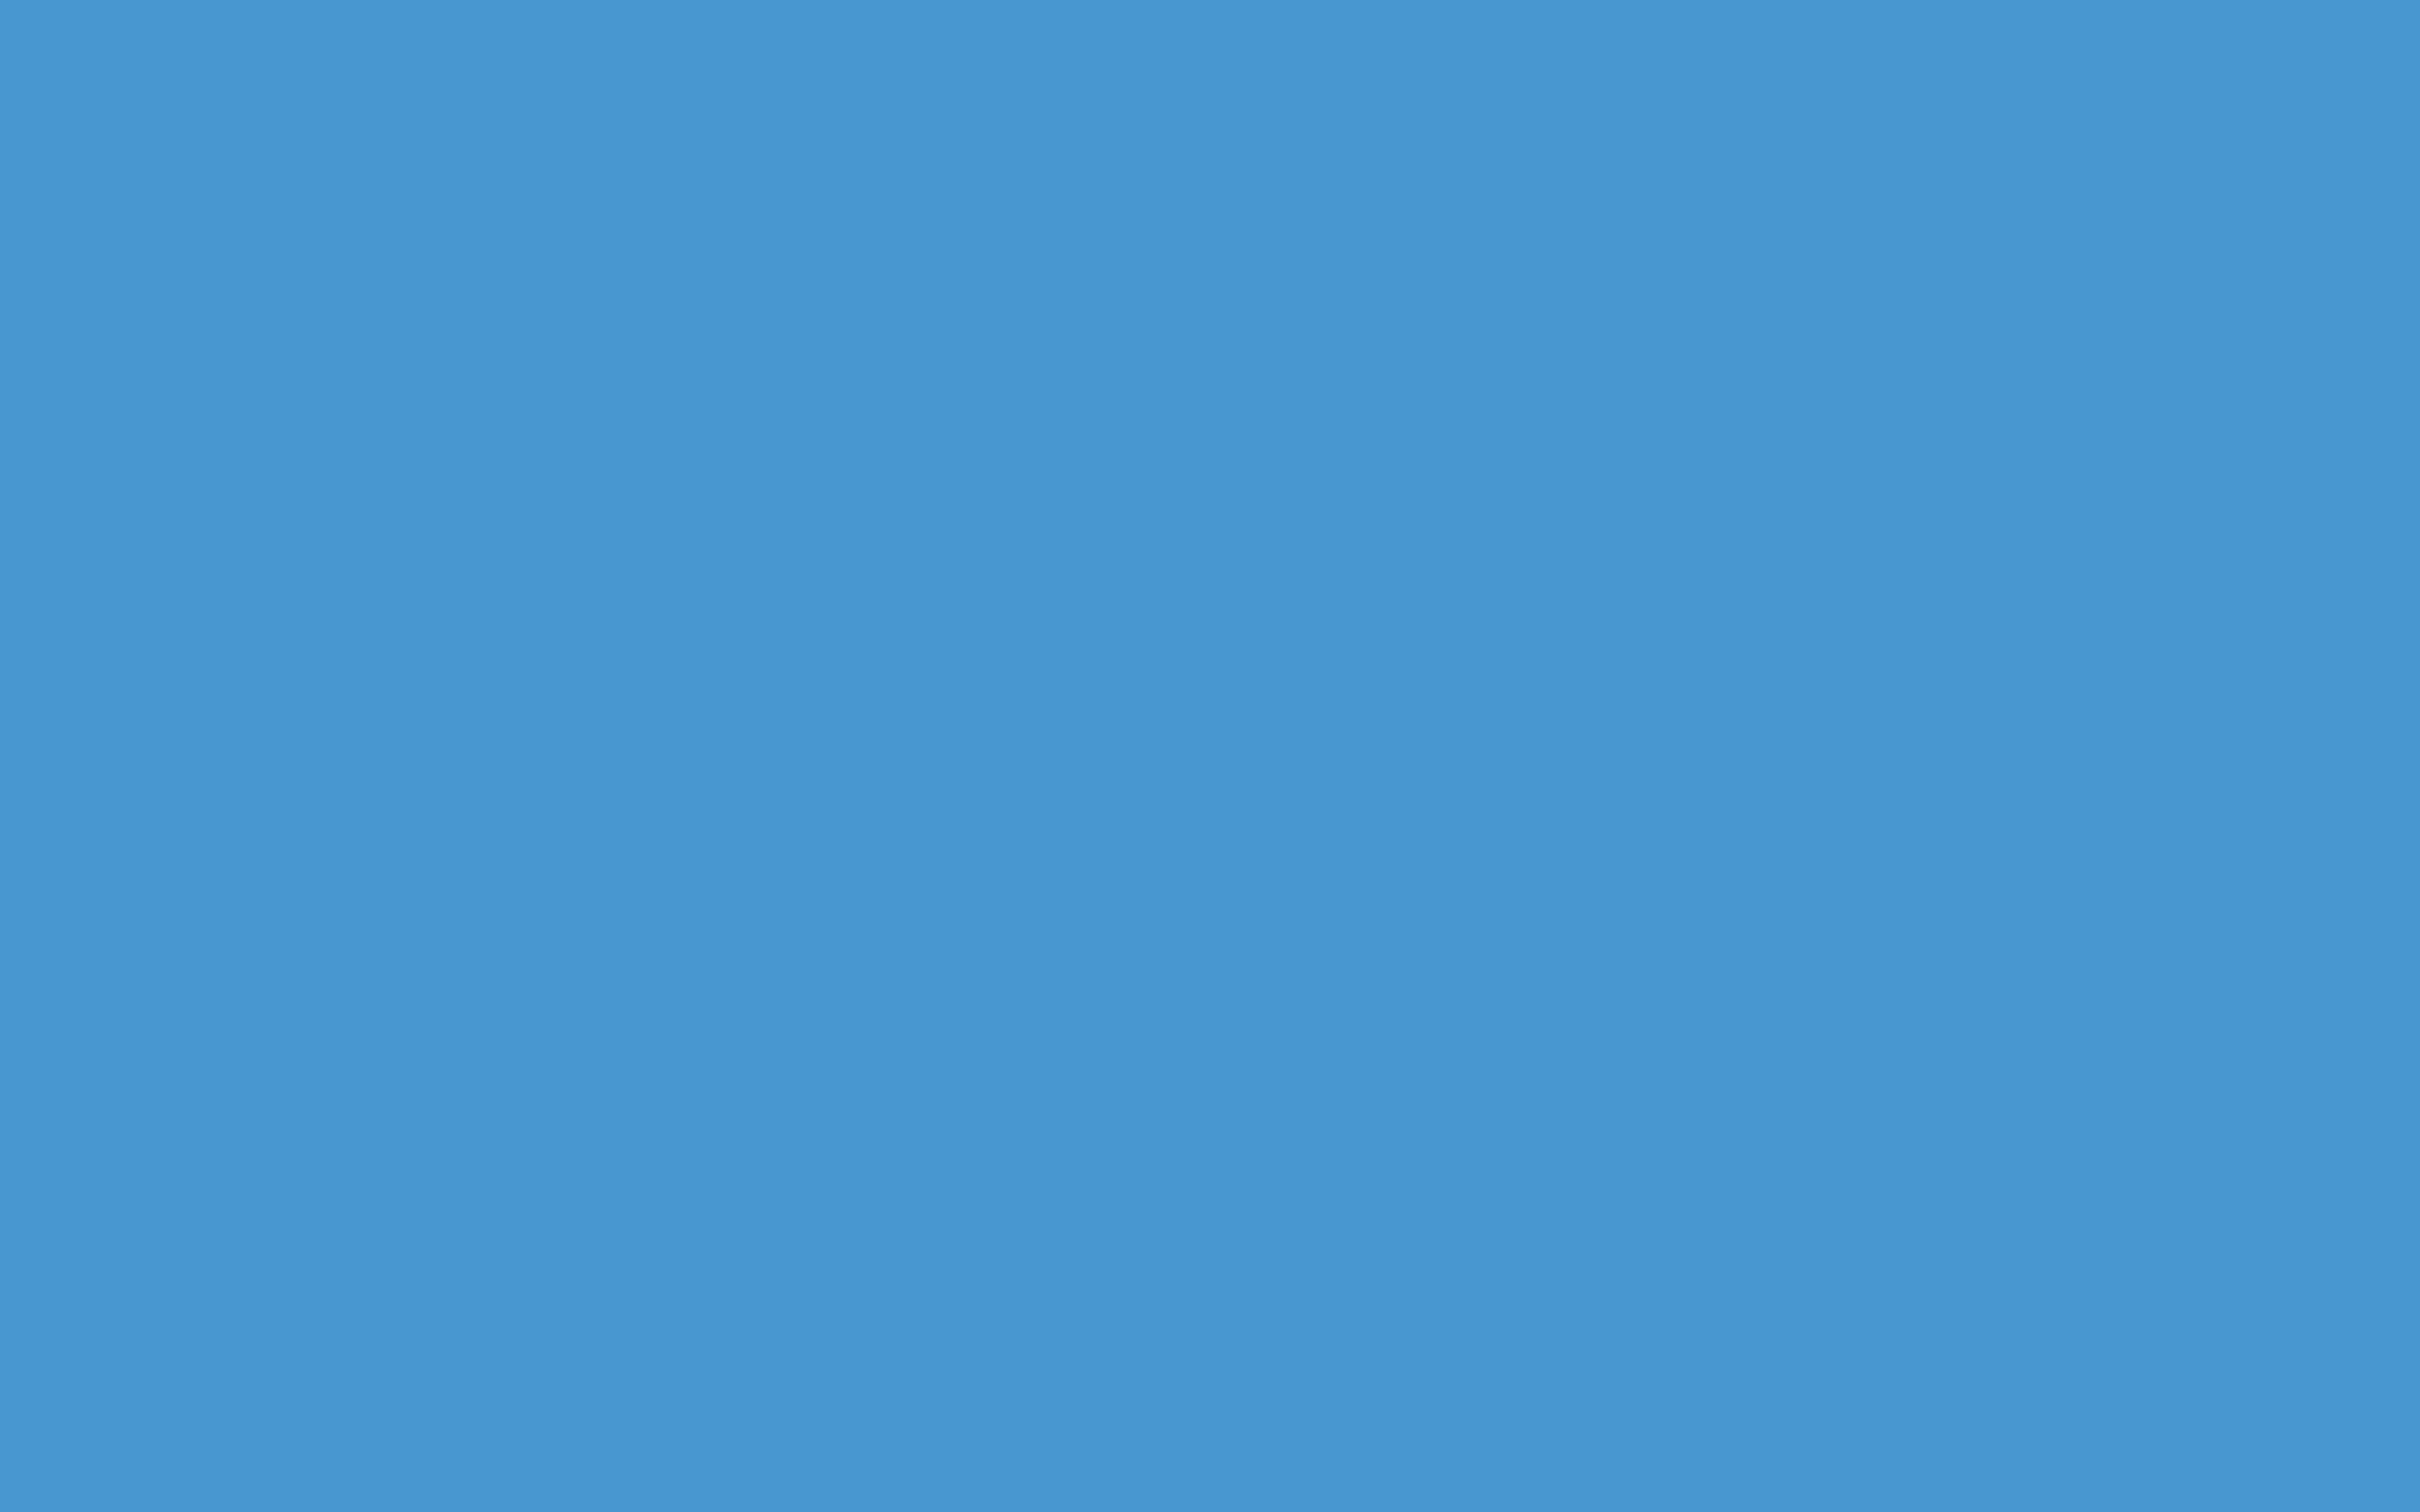 2560x1600 Celestial Blue Solid Color Background